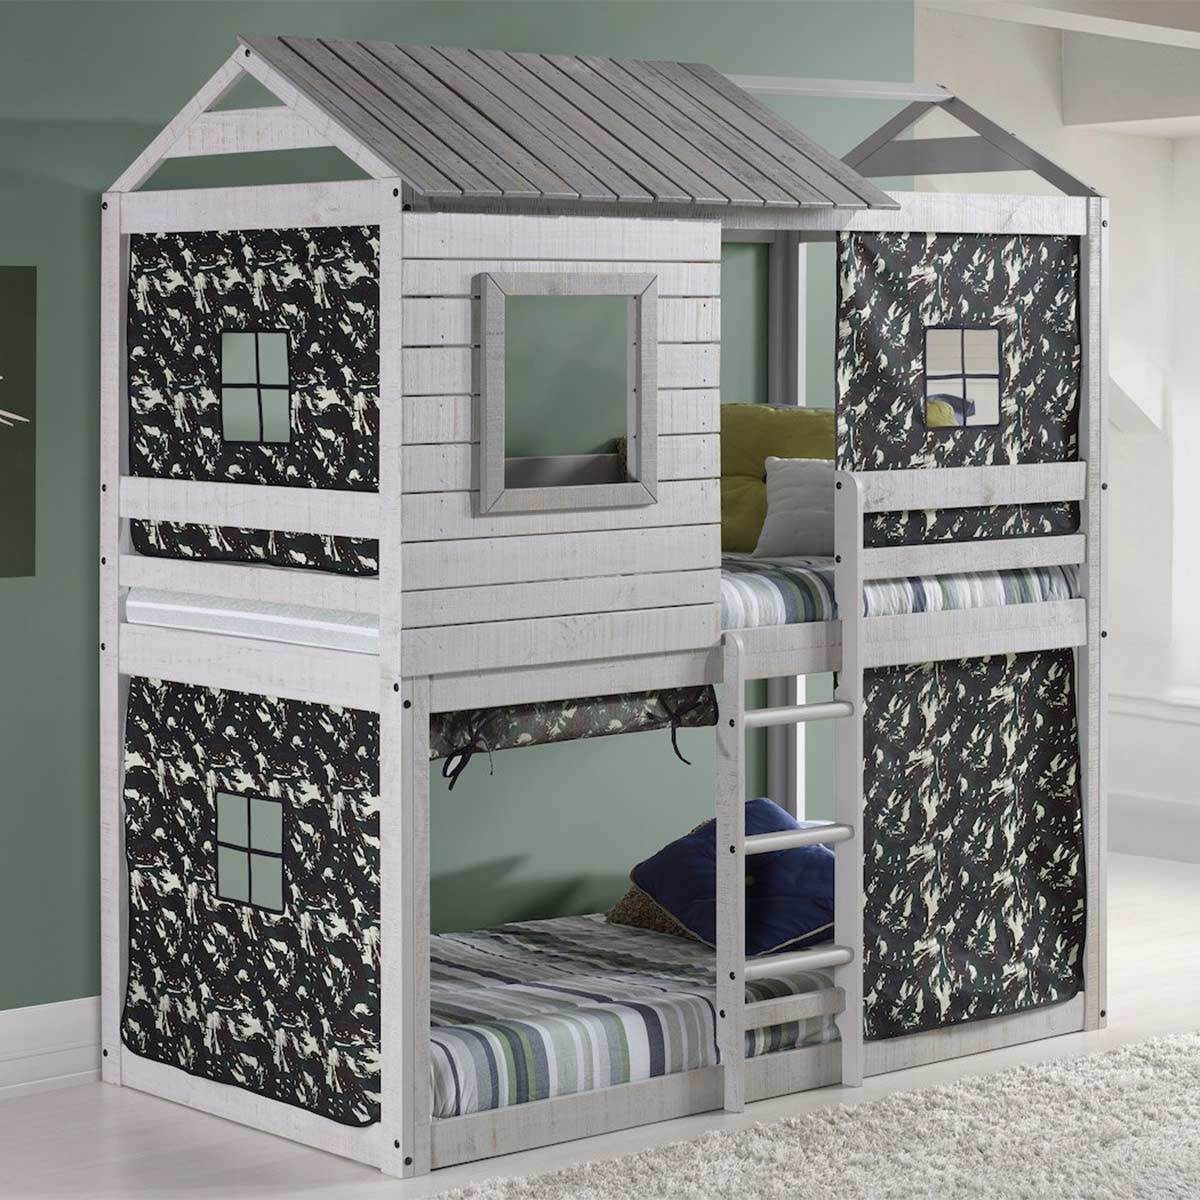 Custom Mini-House Double Bunk